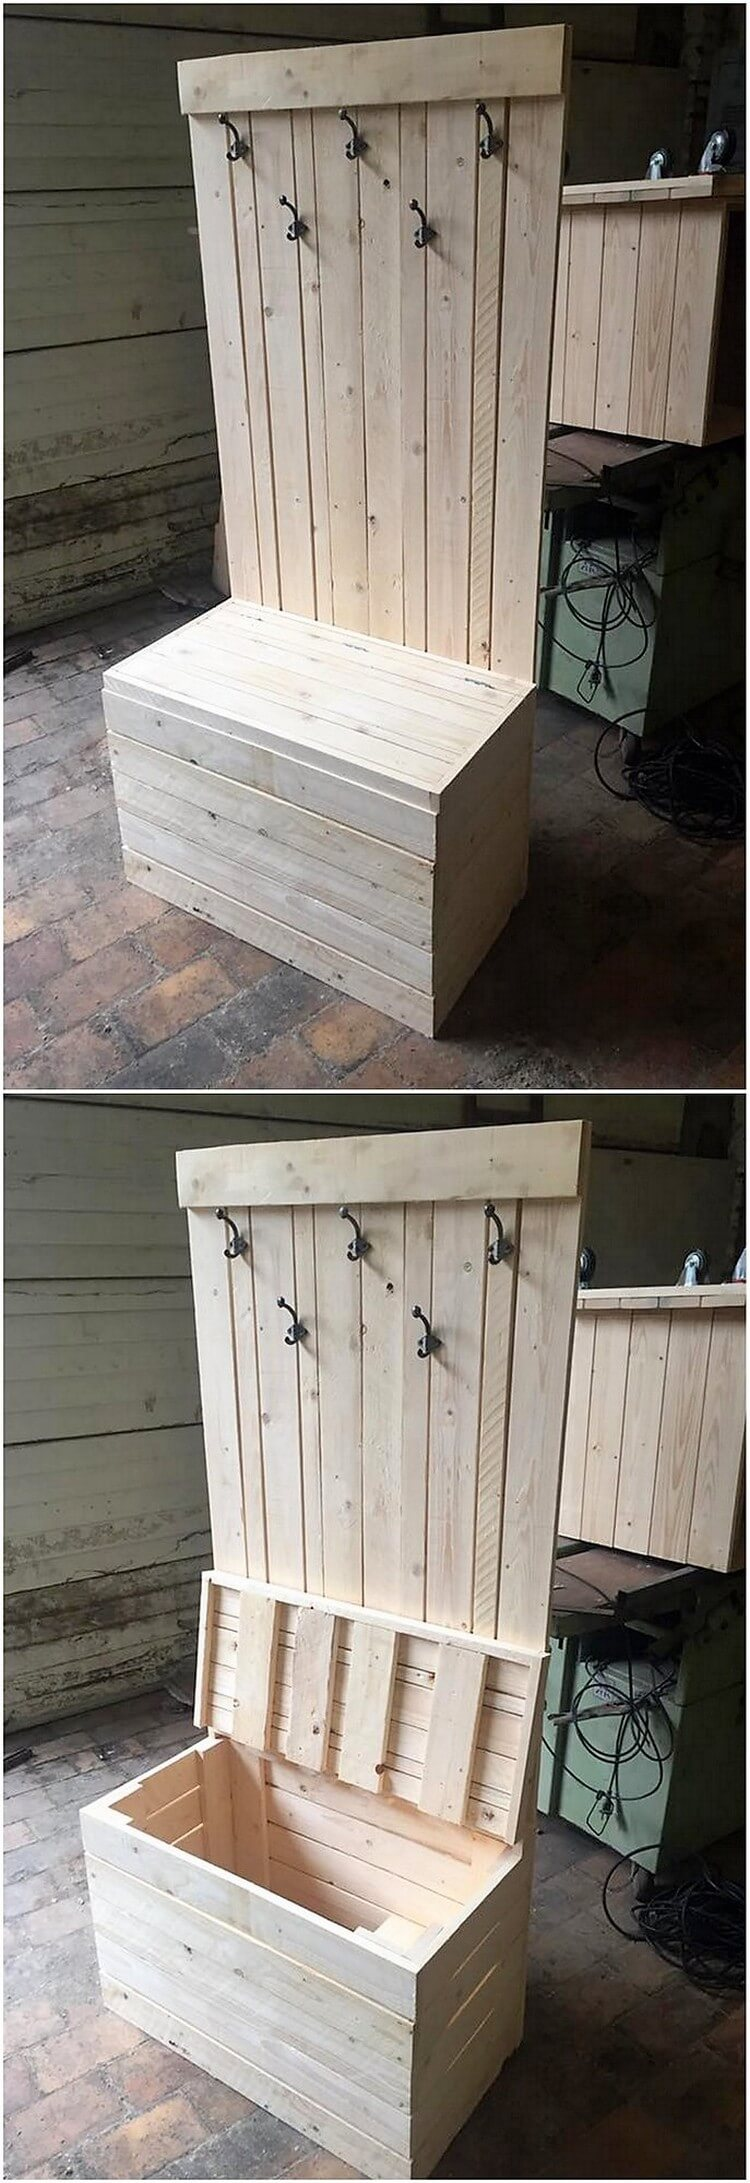 Pallet Coat Rack and Seat with Storage